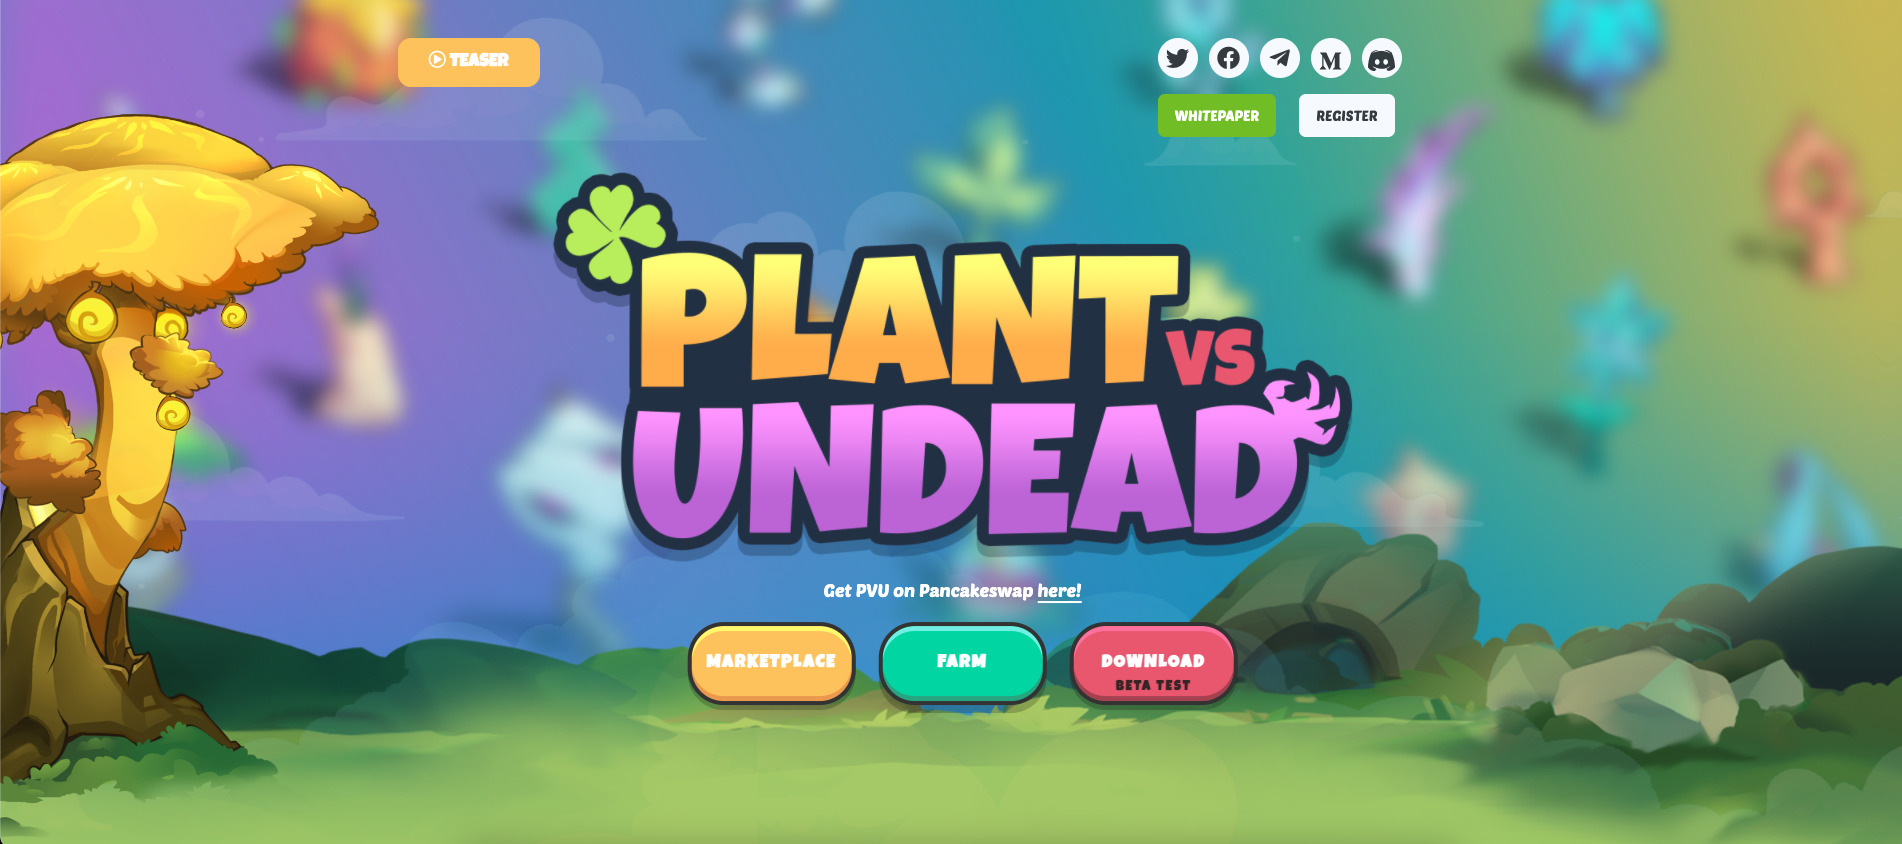 How to buy PVU Plant vs Undead tokens